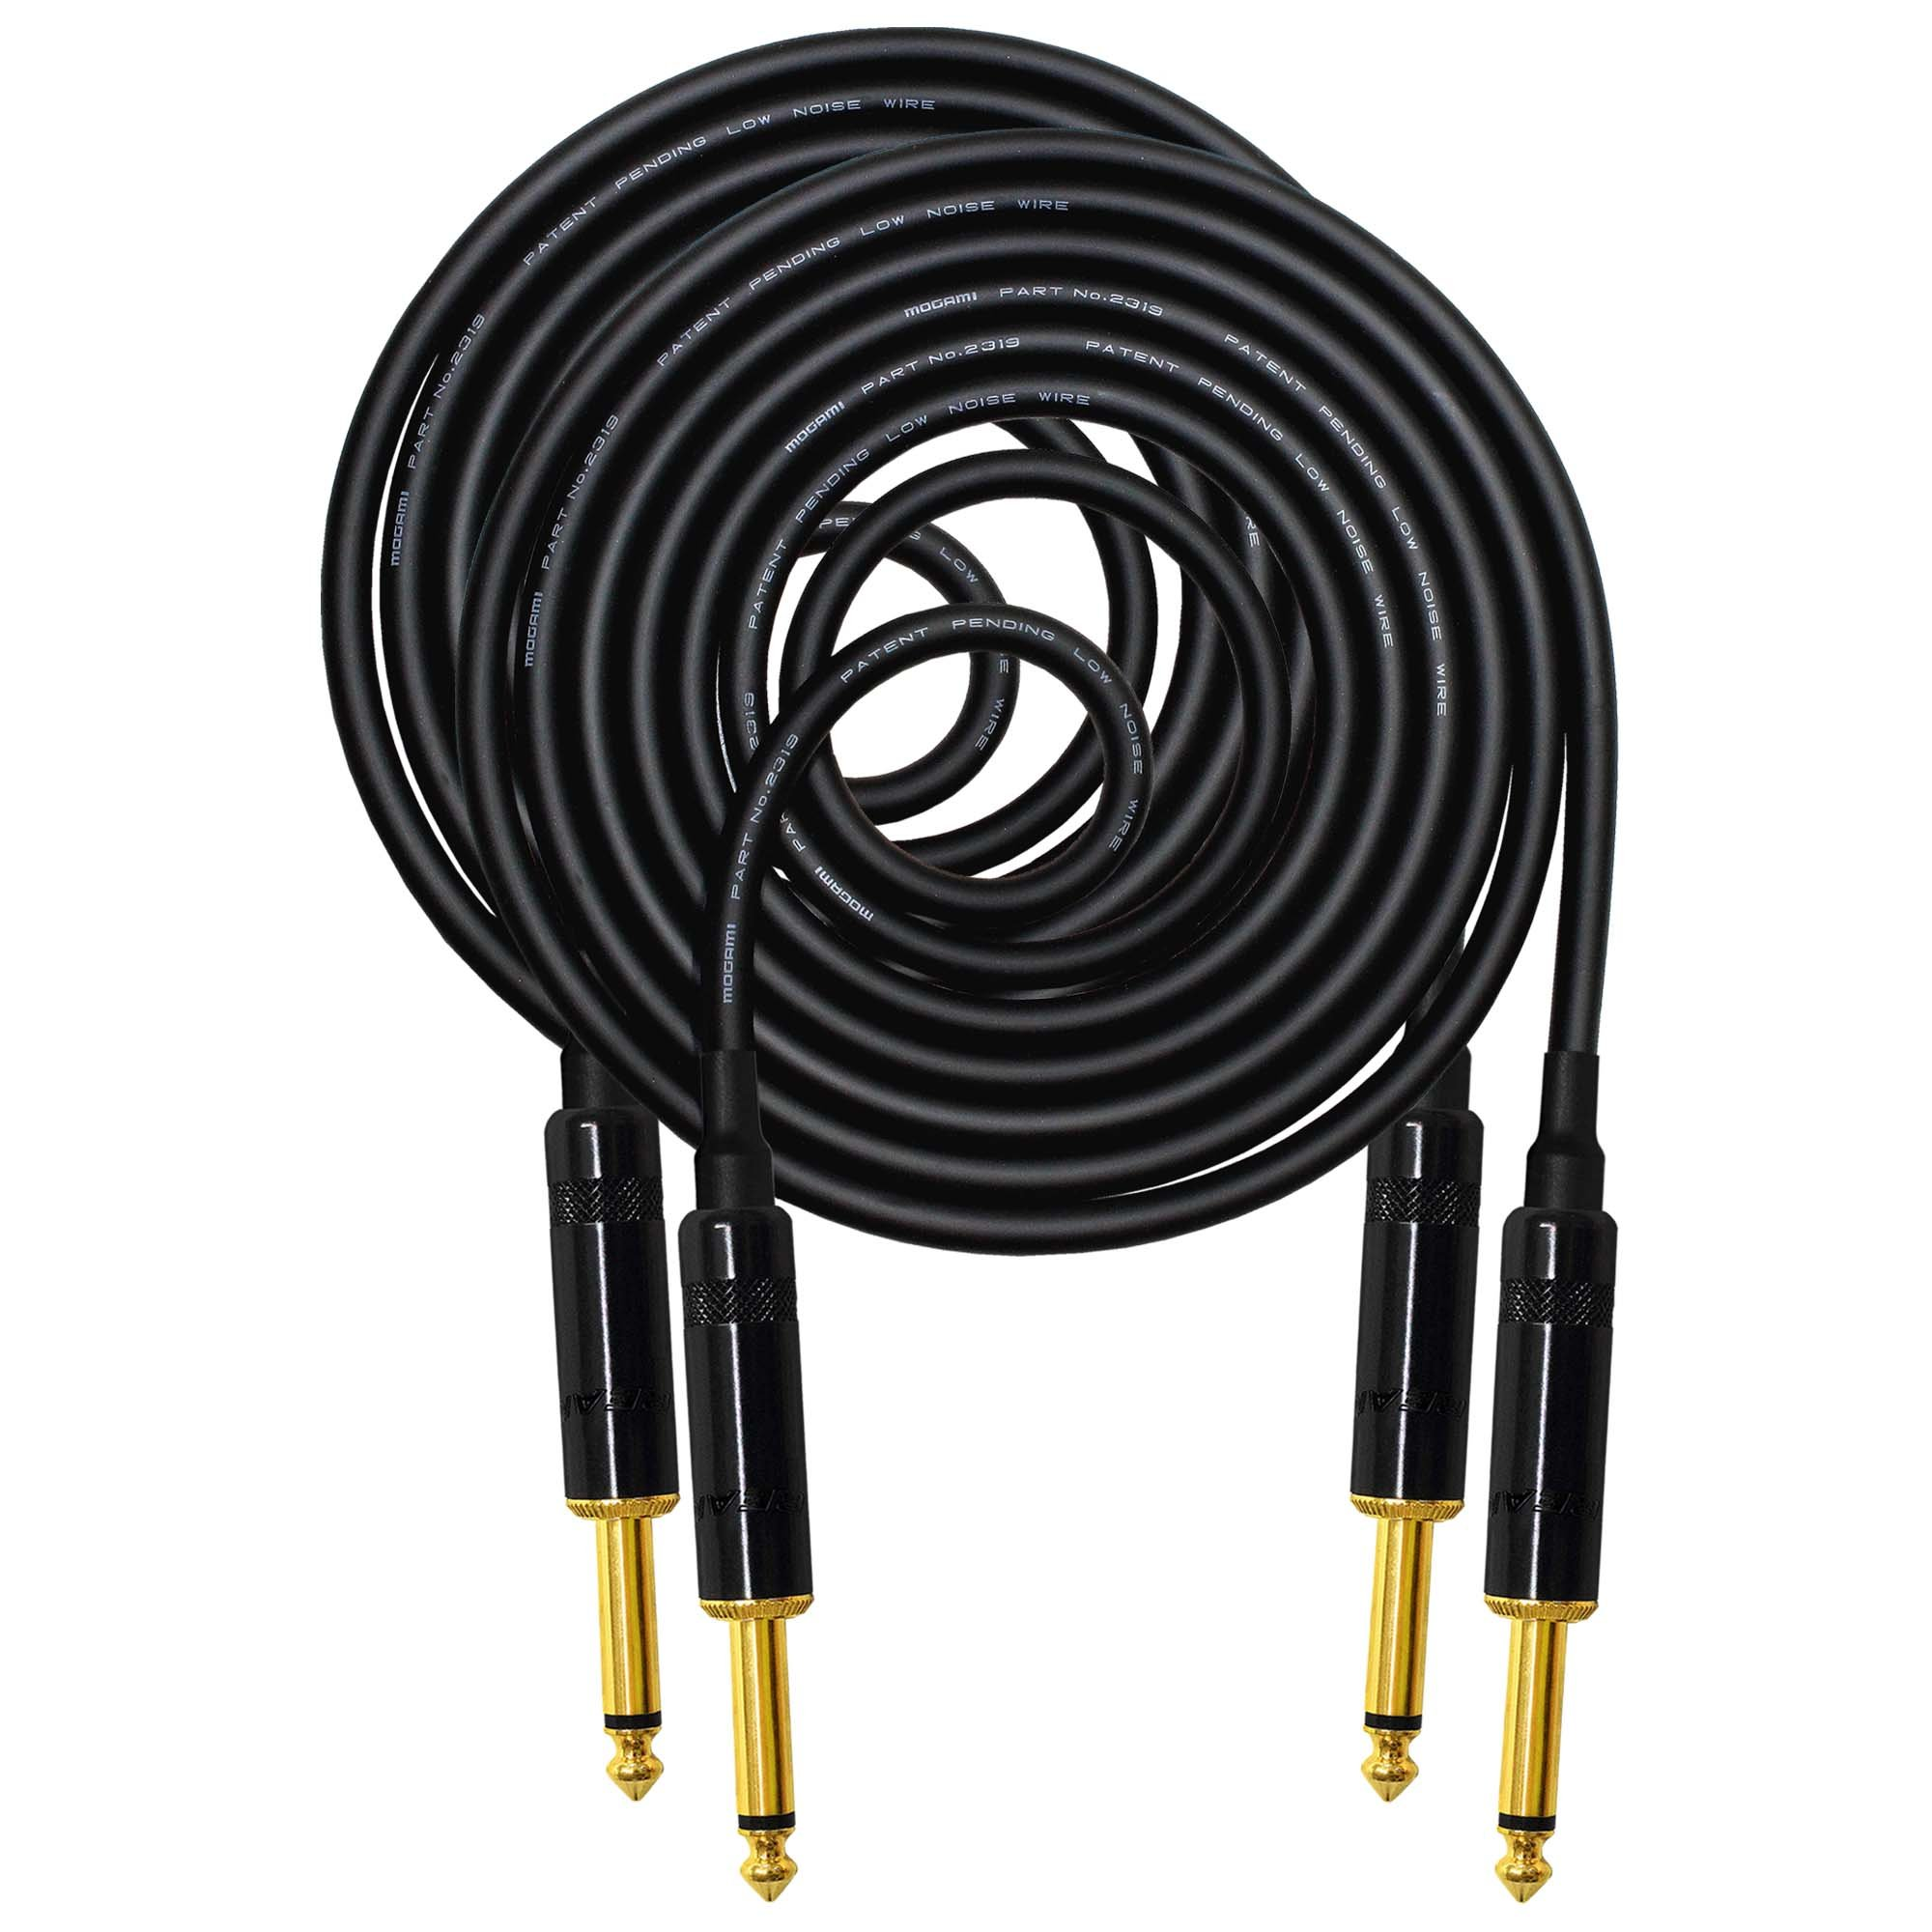 2 Units - 10 Foot -Pedal, Effects, Patch, Guitar instrument cable CUSTOM MADE By WORLDS BEST CABLES - made using Mogami 2319 wire and Neutrik-Rean NYS224BG Gold ¼ inch (6.35mm) TS Plugs